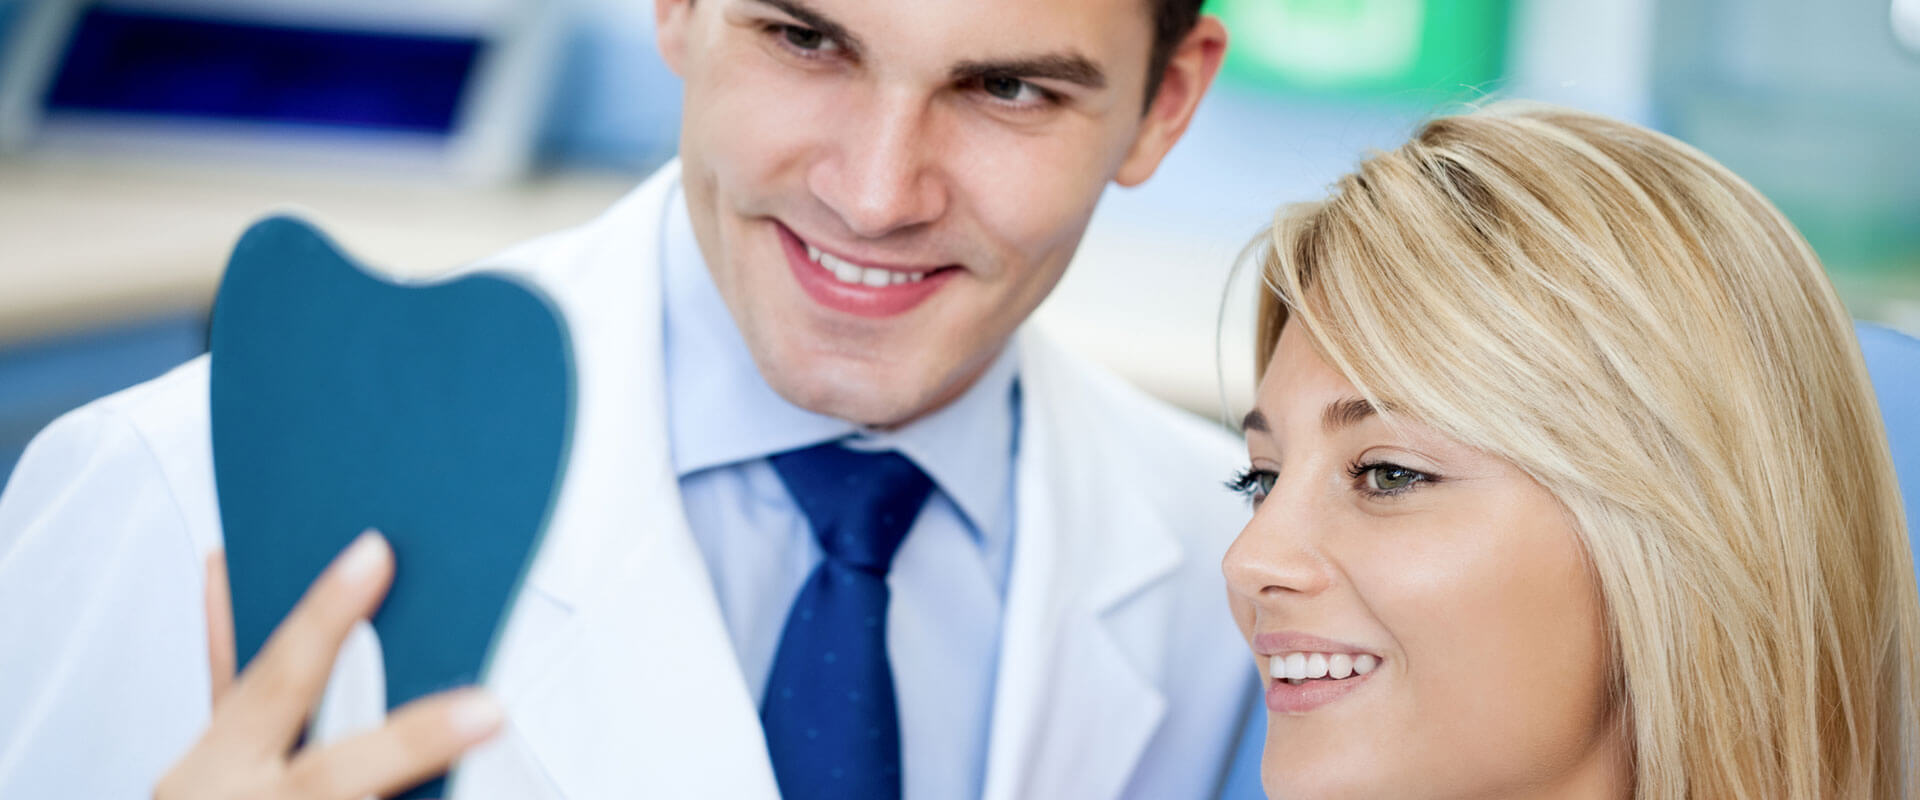 Dentist and satisfied patient smiling looking at white teeth